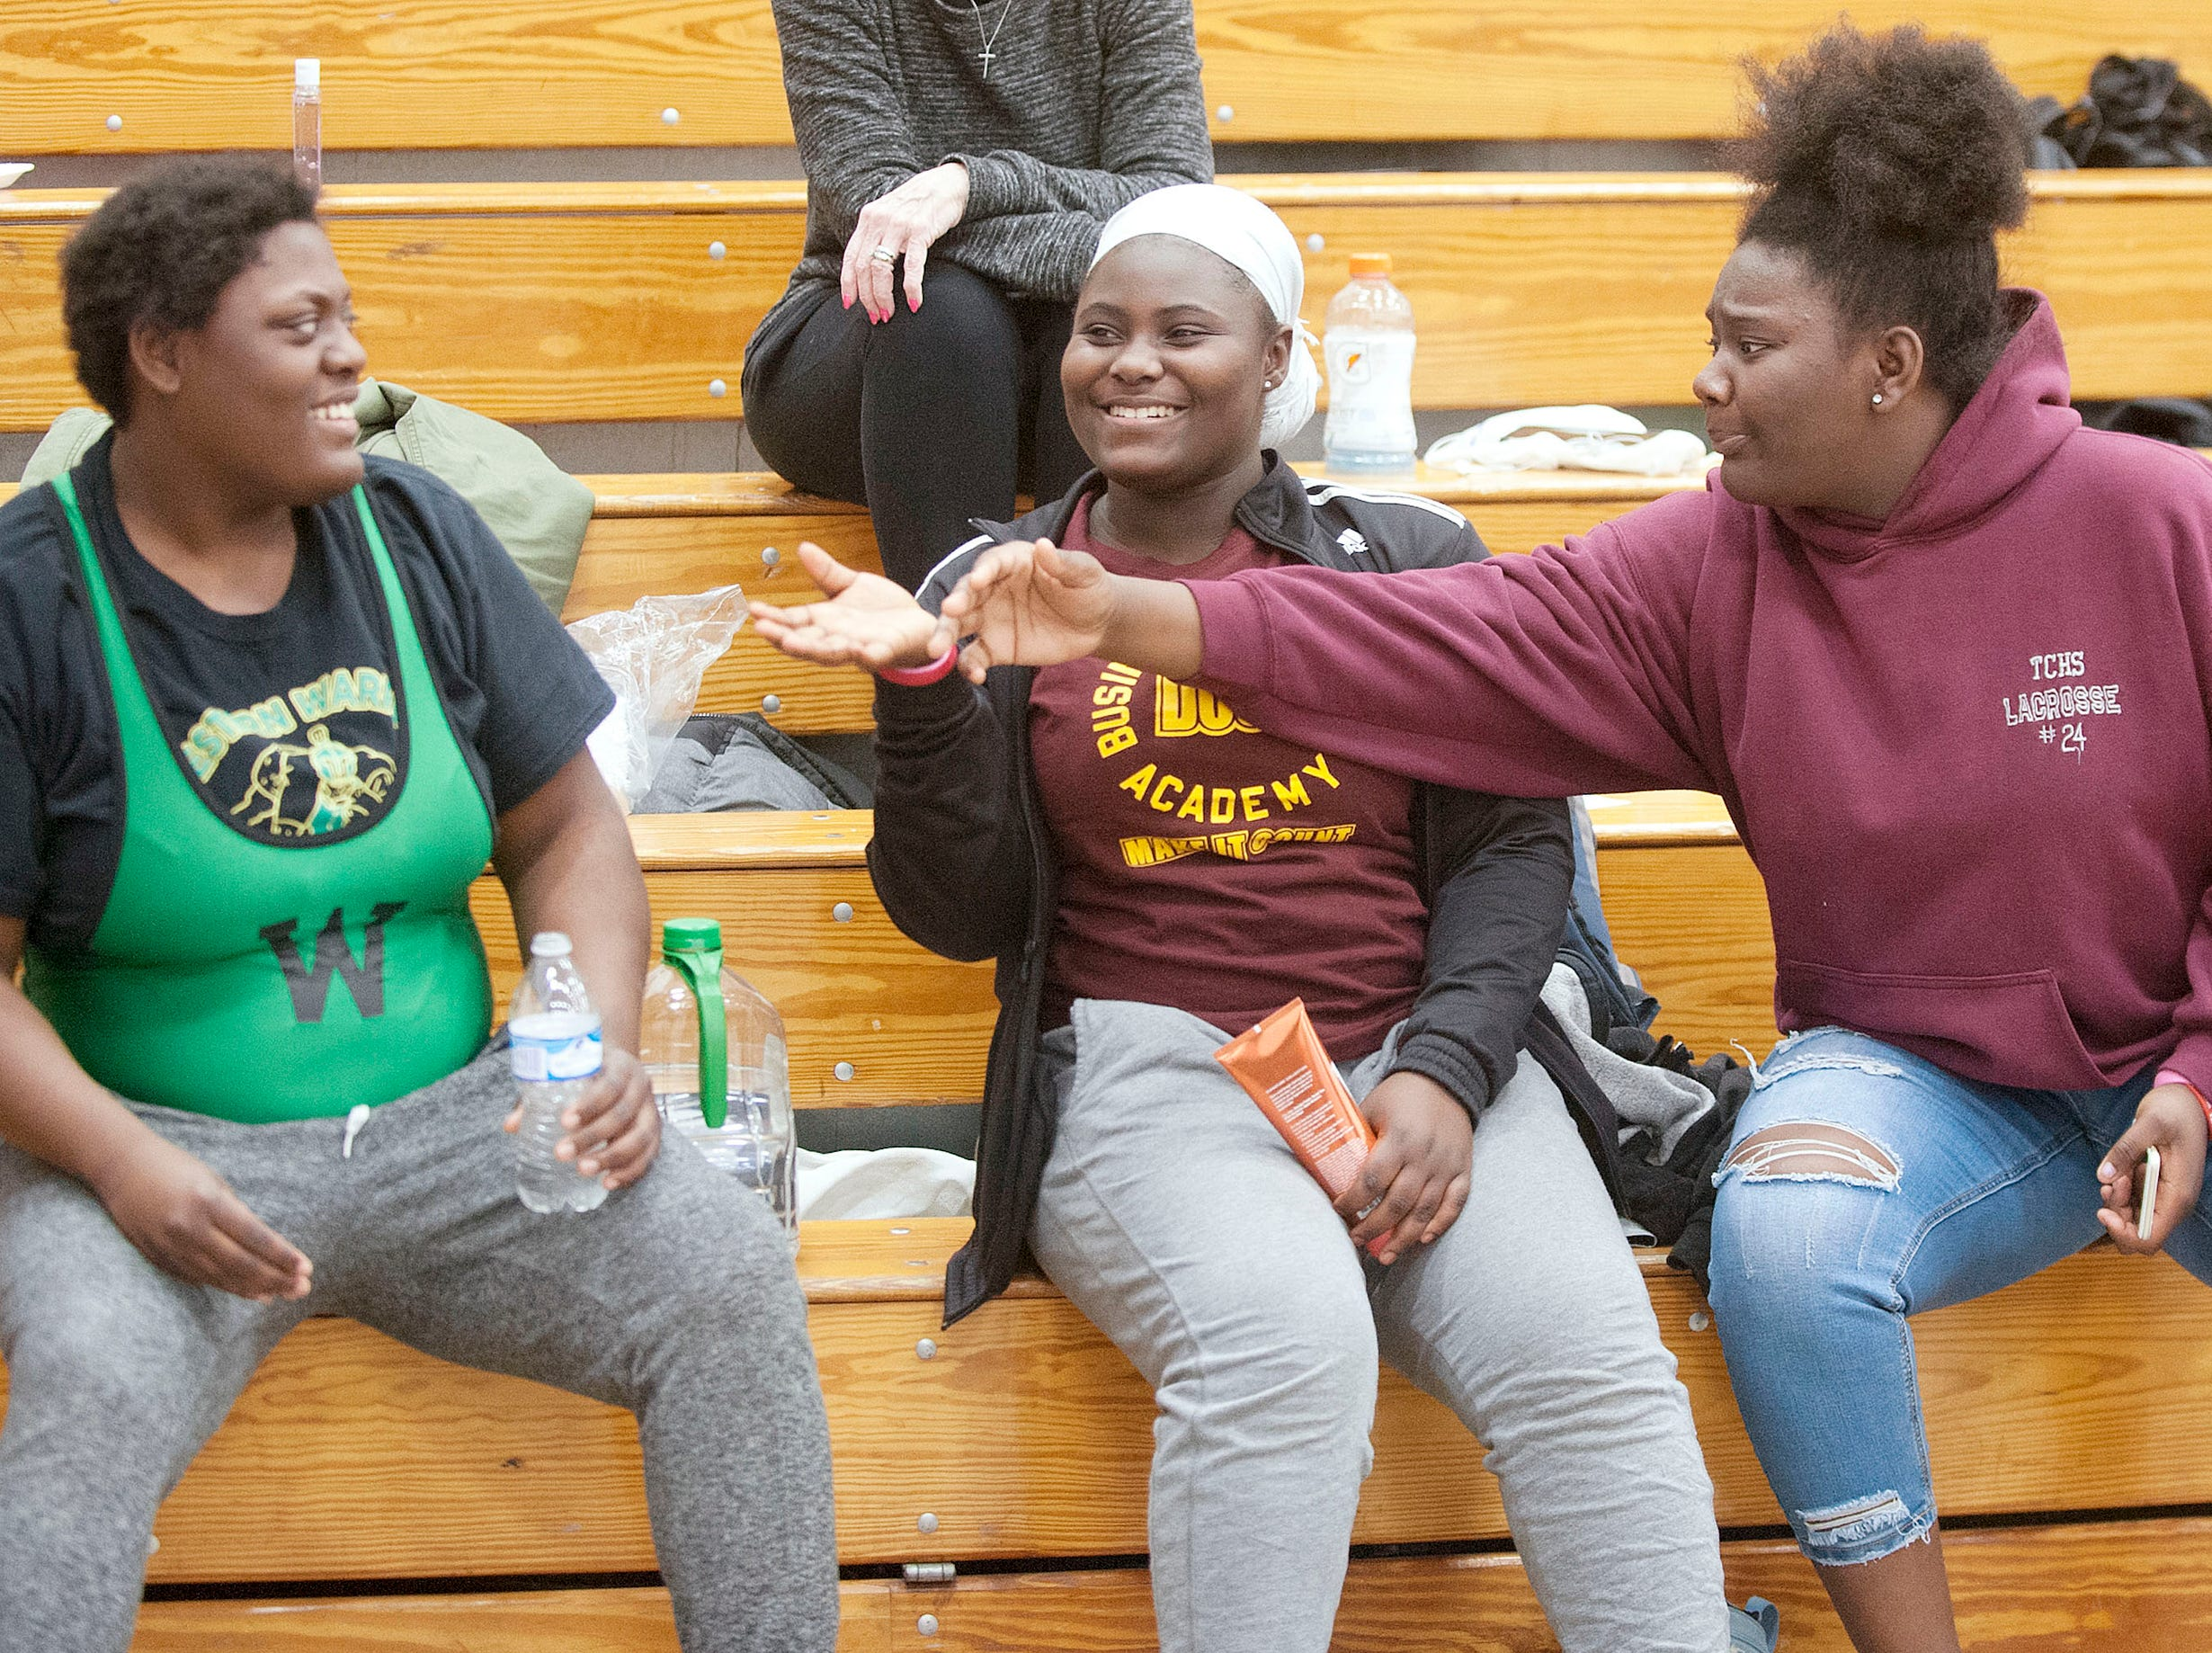 Western wrestler Malasha Lokey, left,  jokes with two of her close friends, Angel Badu, a former Western student now at Doss, center, and Karilya Sweet, right, Western's wrestling team manager.  The three were at a KHSAA Region 3 wrestling meet at Doss.09 February 2019